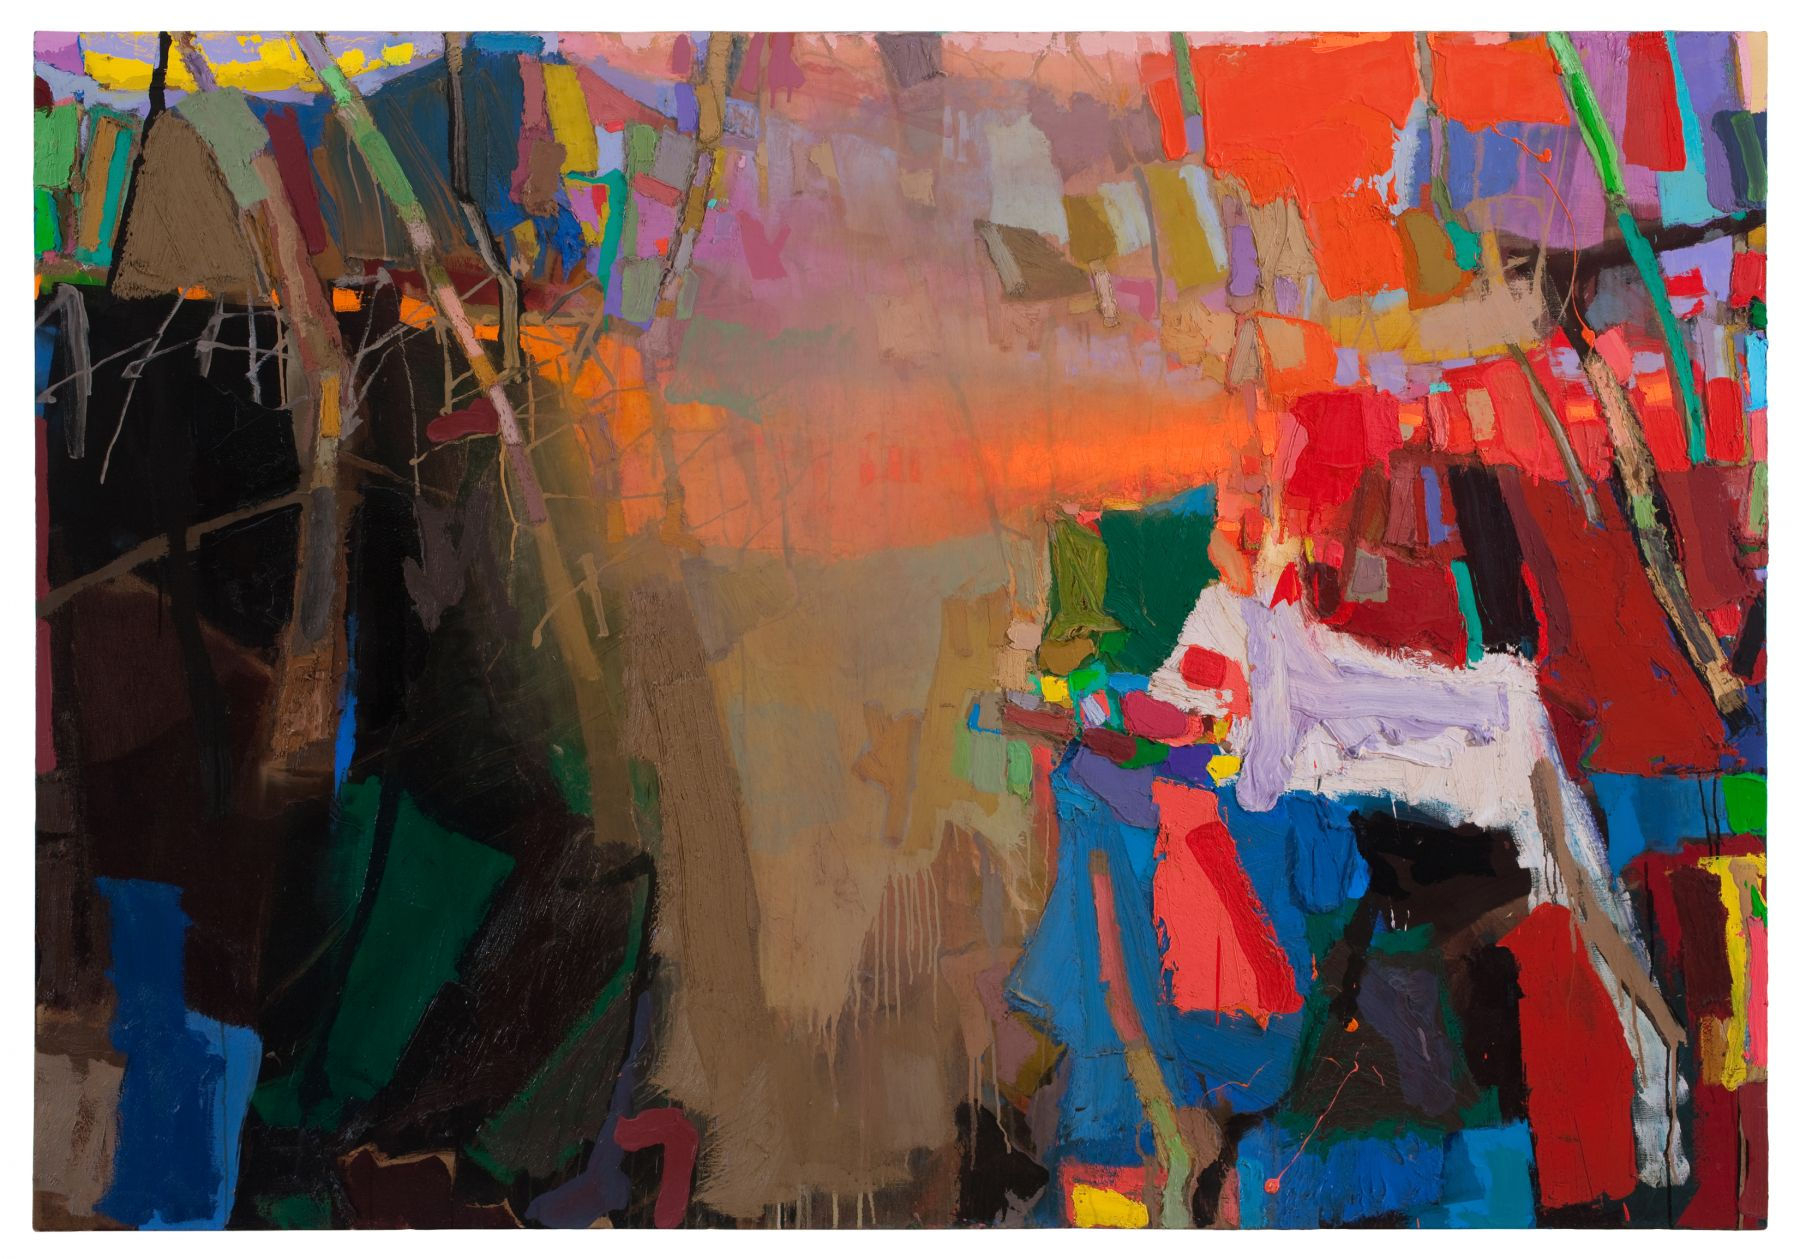 Brian Rutenberg Low Light (SOLD), 2010 oil on linen 50 x 72 inches